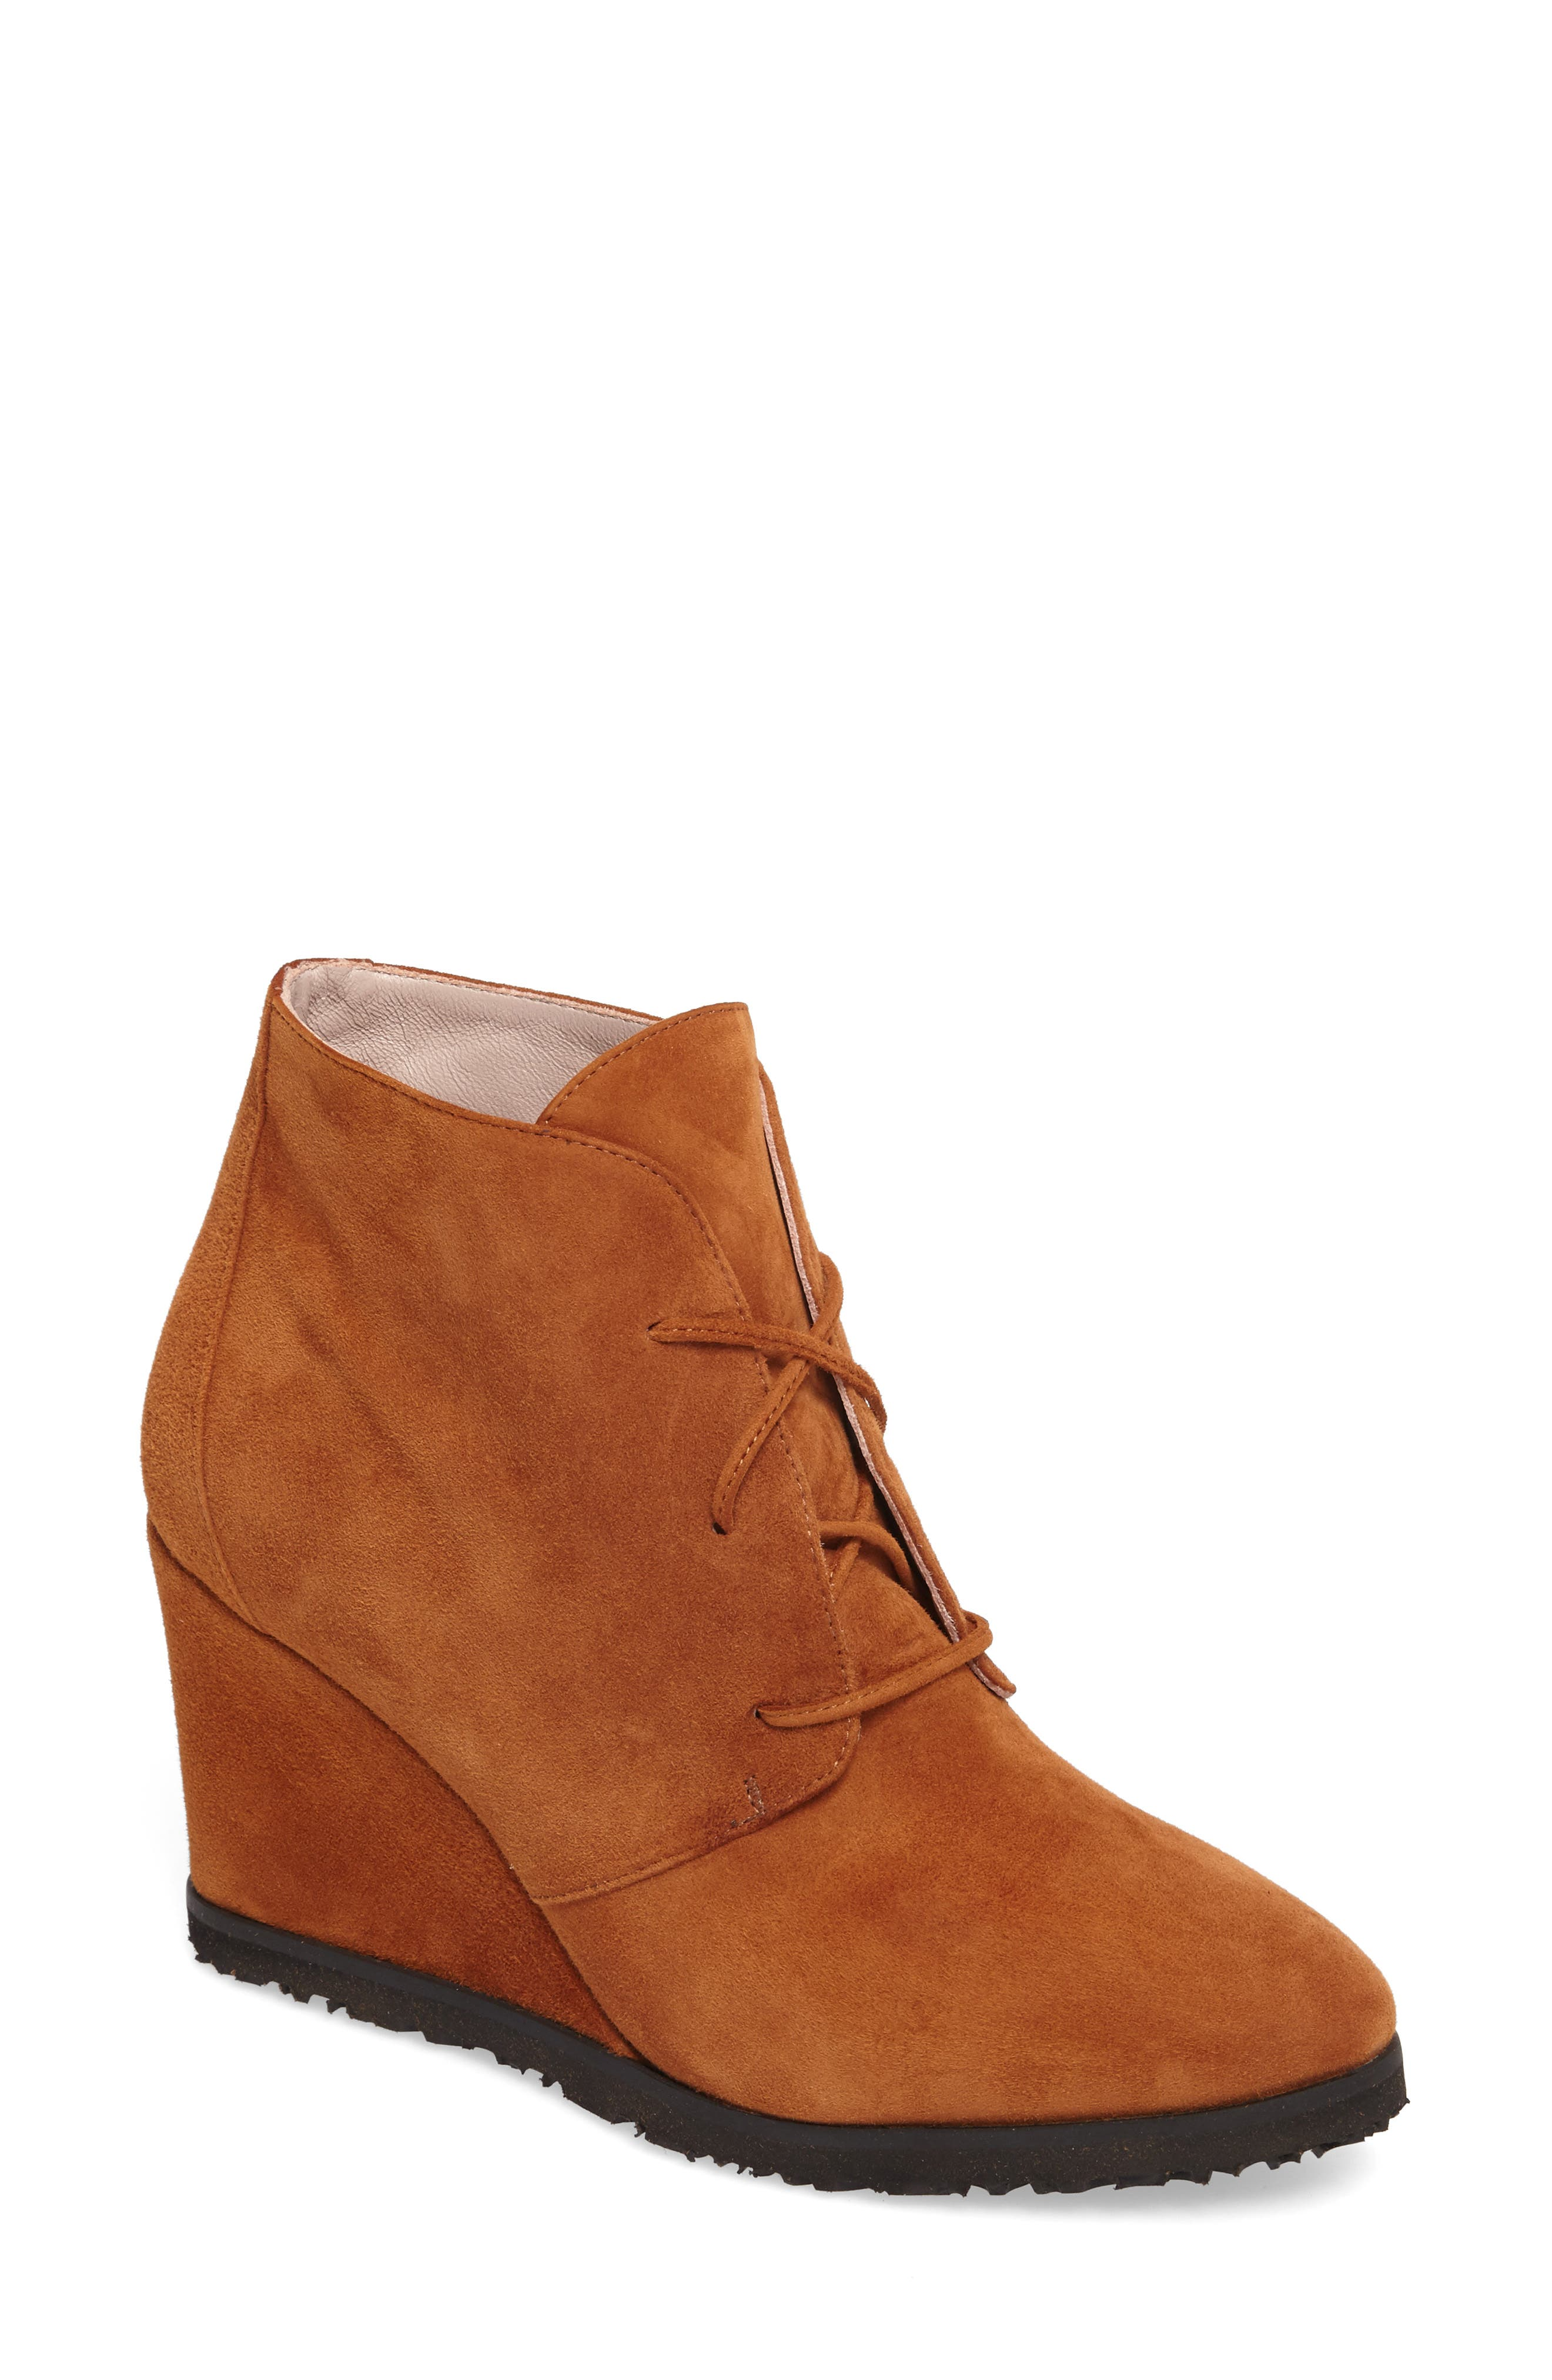 Main Image - Taryn Rose Marta Wedge Bootie (Women)